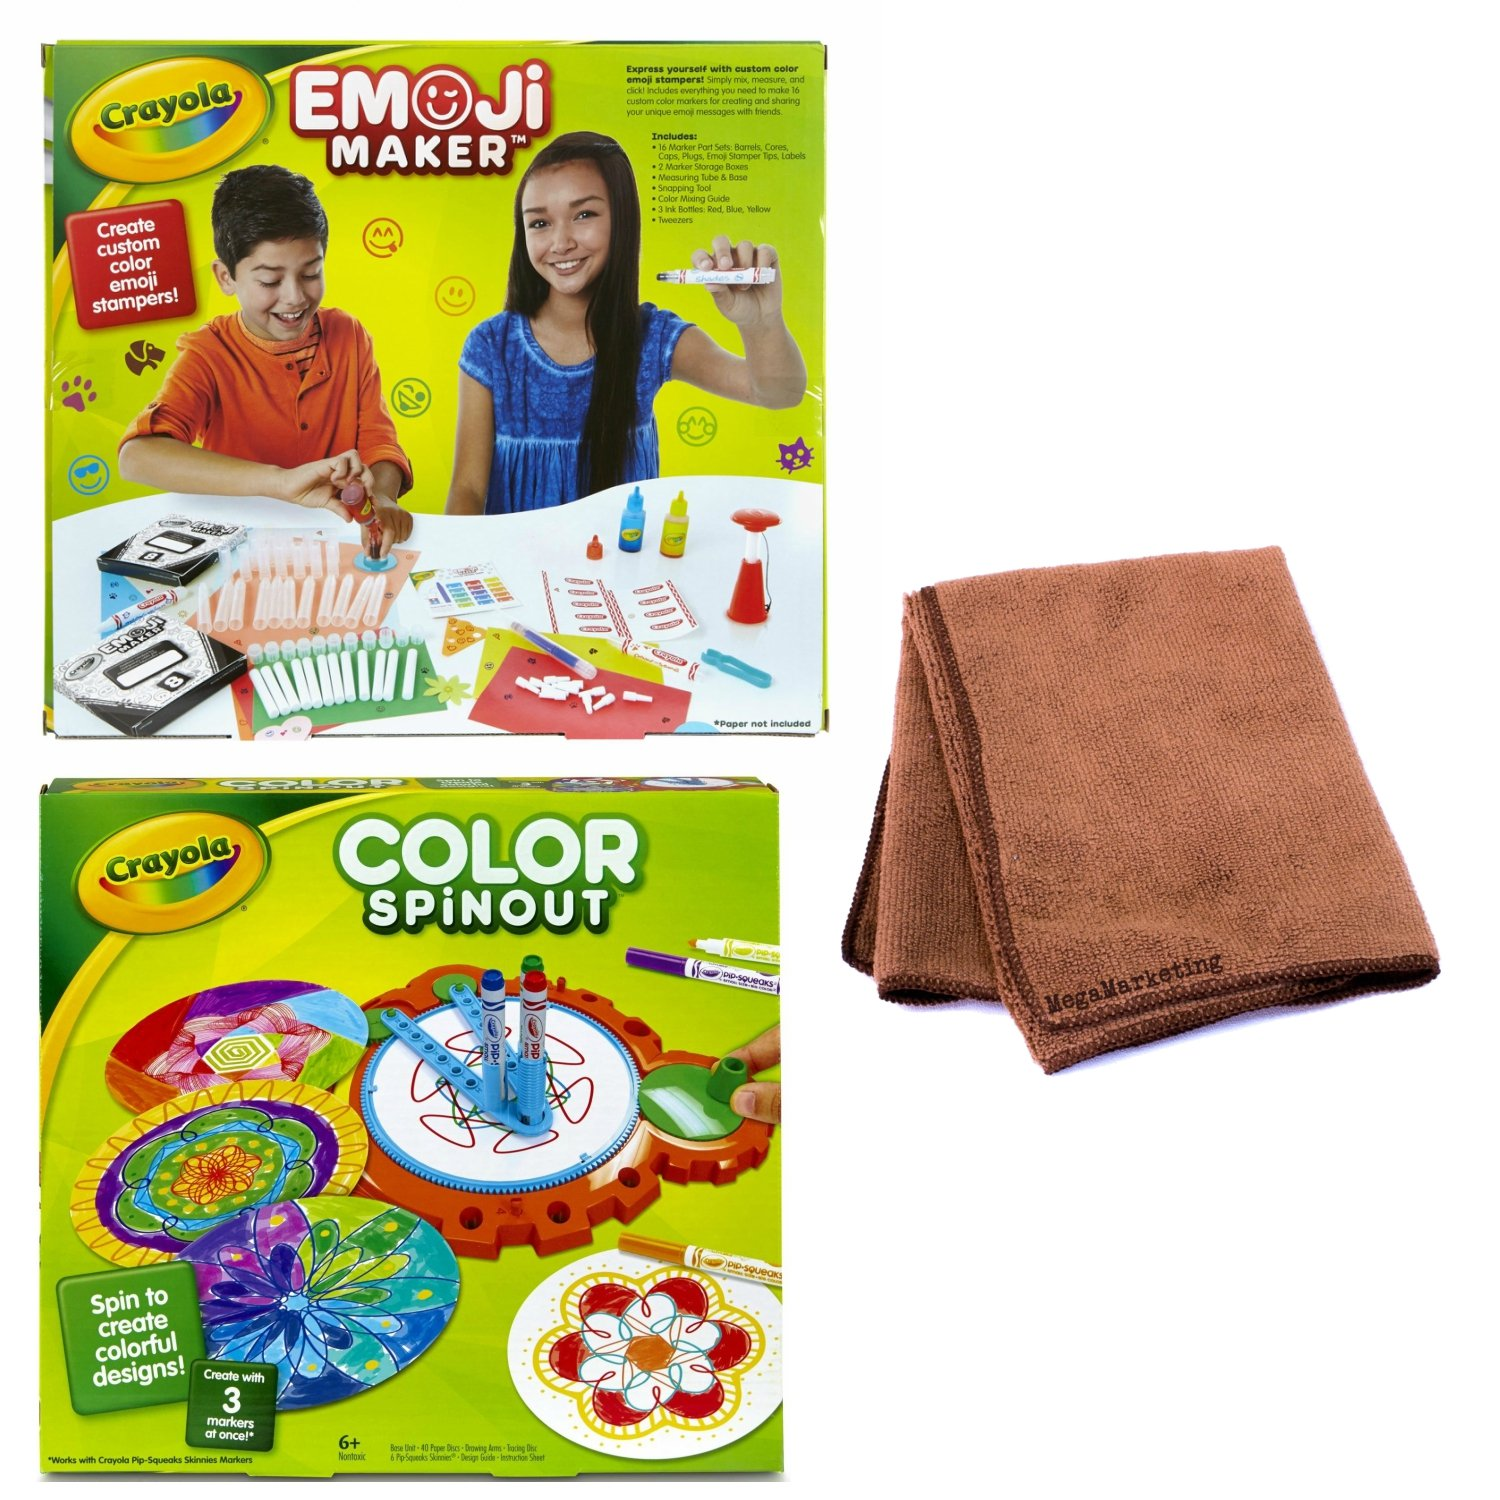 Crayola Emoji Stamp Maker, Marker Maker, Gift, Ages 6, 7, 8, 9, 10, 11, 12 (2) and Crayola Color Spinout, Spin Art with Markers, Gift, Ages 5, 6, 7, 8, 9 PLUS Cleaning Cloth by Cráyola